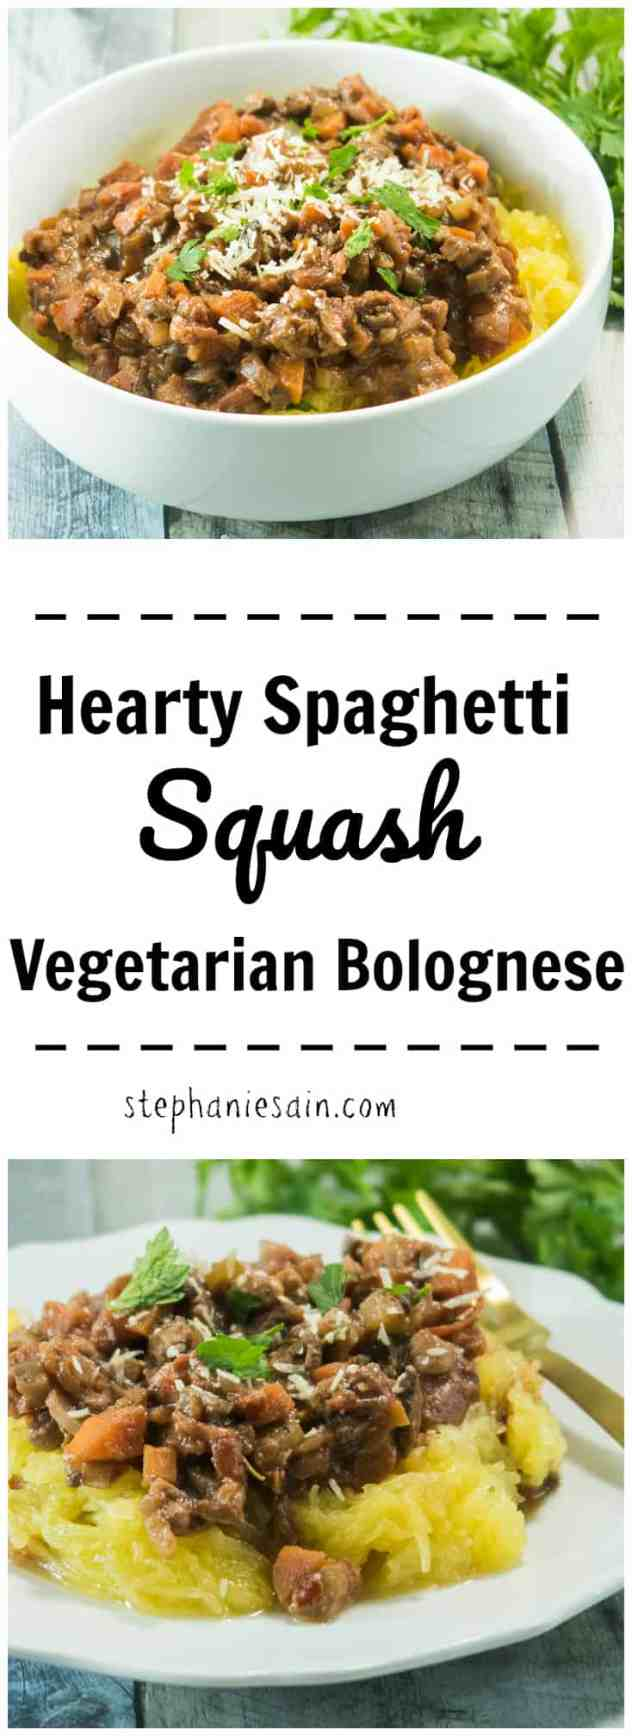 This Hearty Spaghetti Squash Vegetarian Bolognese is chocked full of onions, carrots, celery, & mushrooms. A tasty, filling meal that is perfect for any night of the week. Gluten free & Vegetarian.